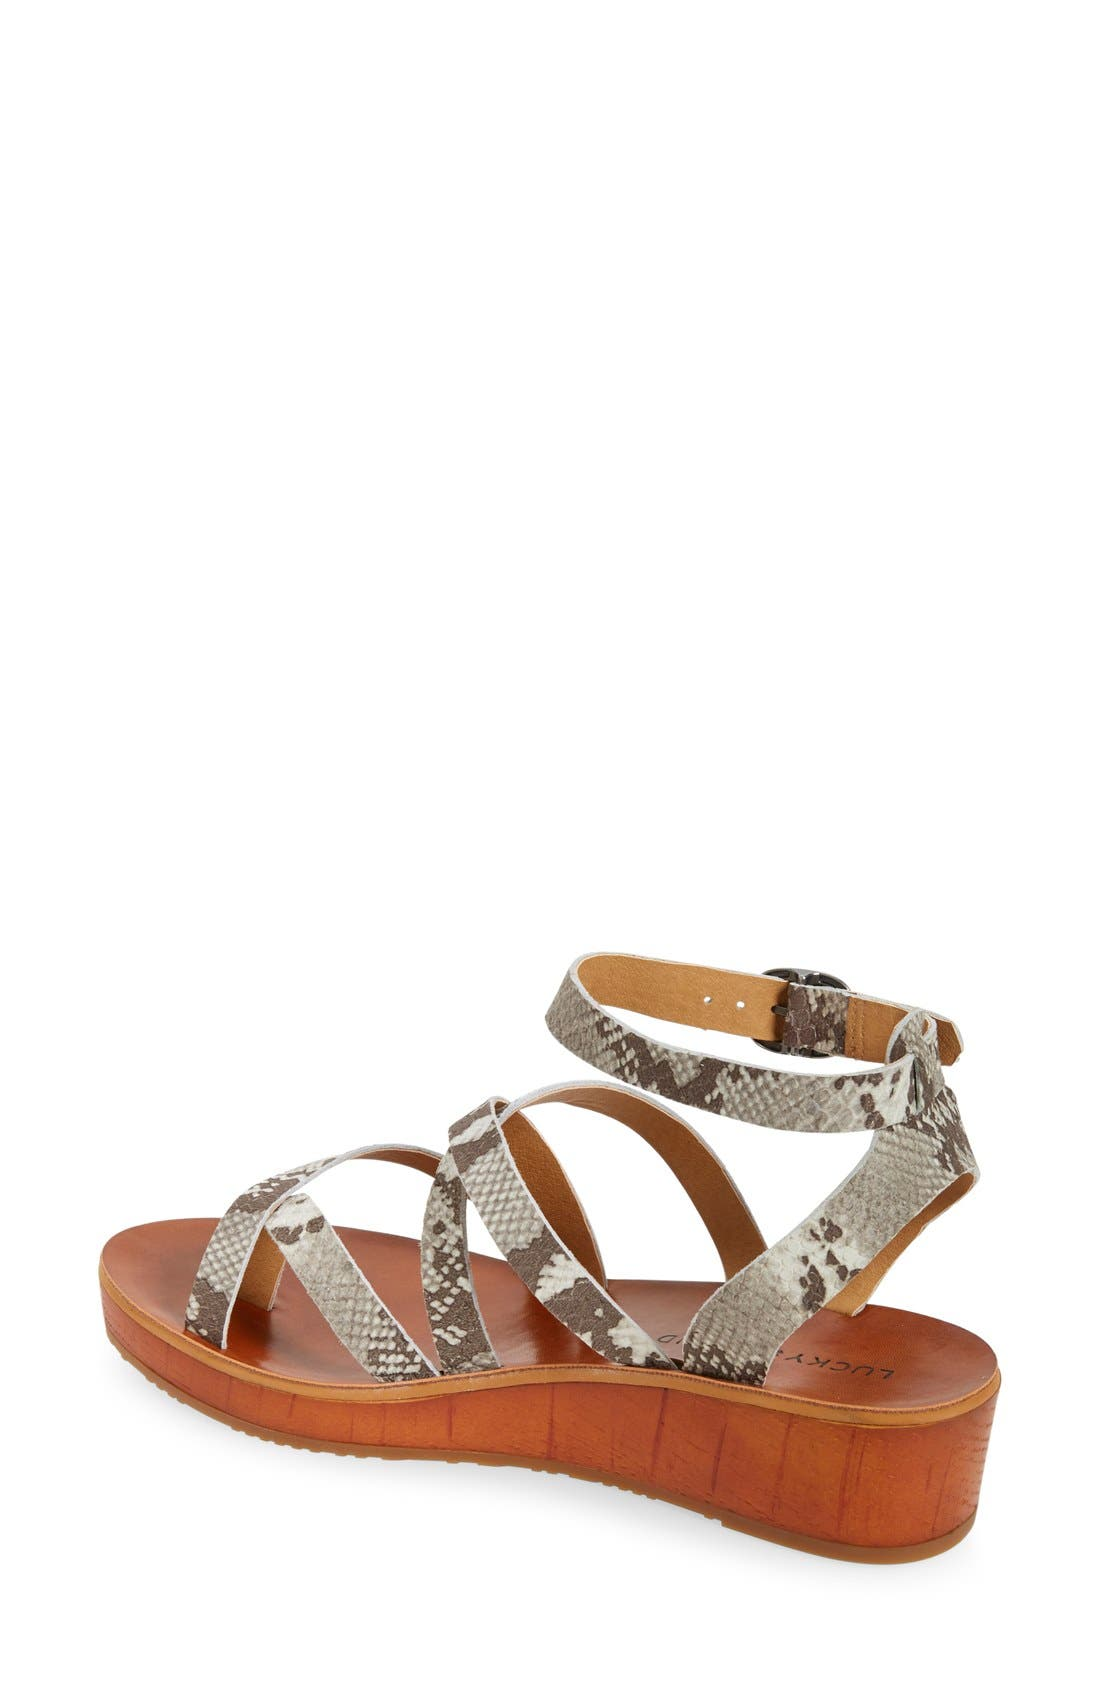 'Honeyy' Platform Sandal,                             Alternate thumbnail 3, color,                             020